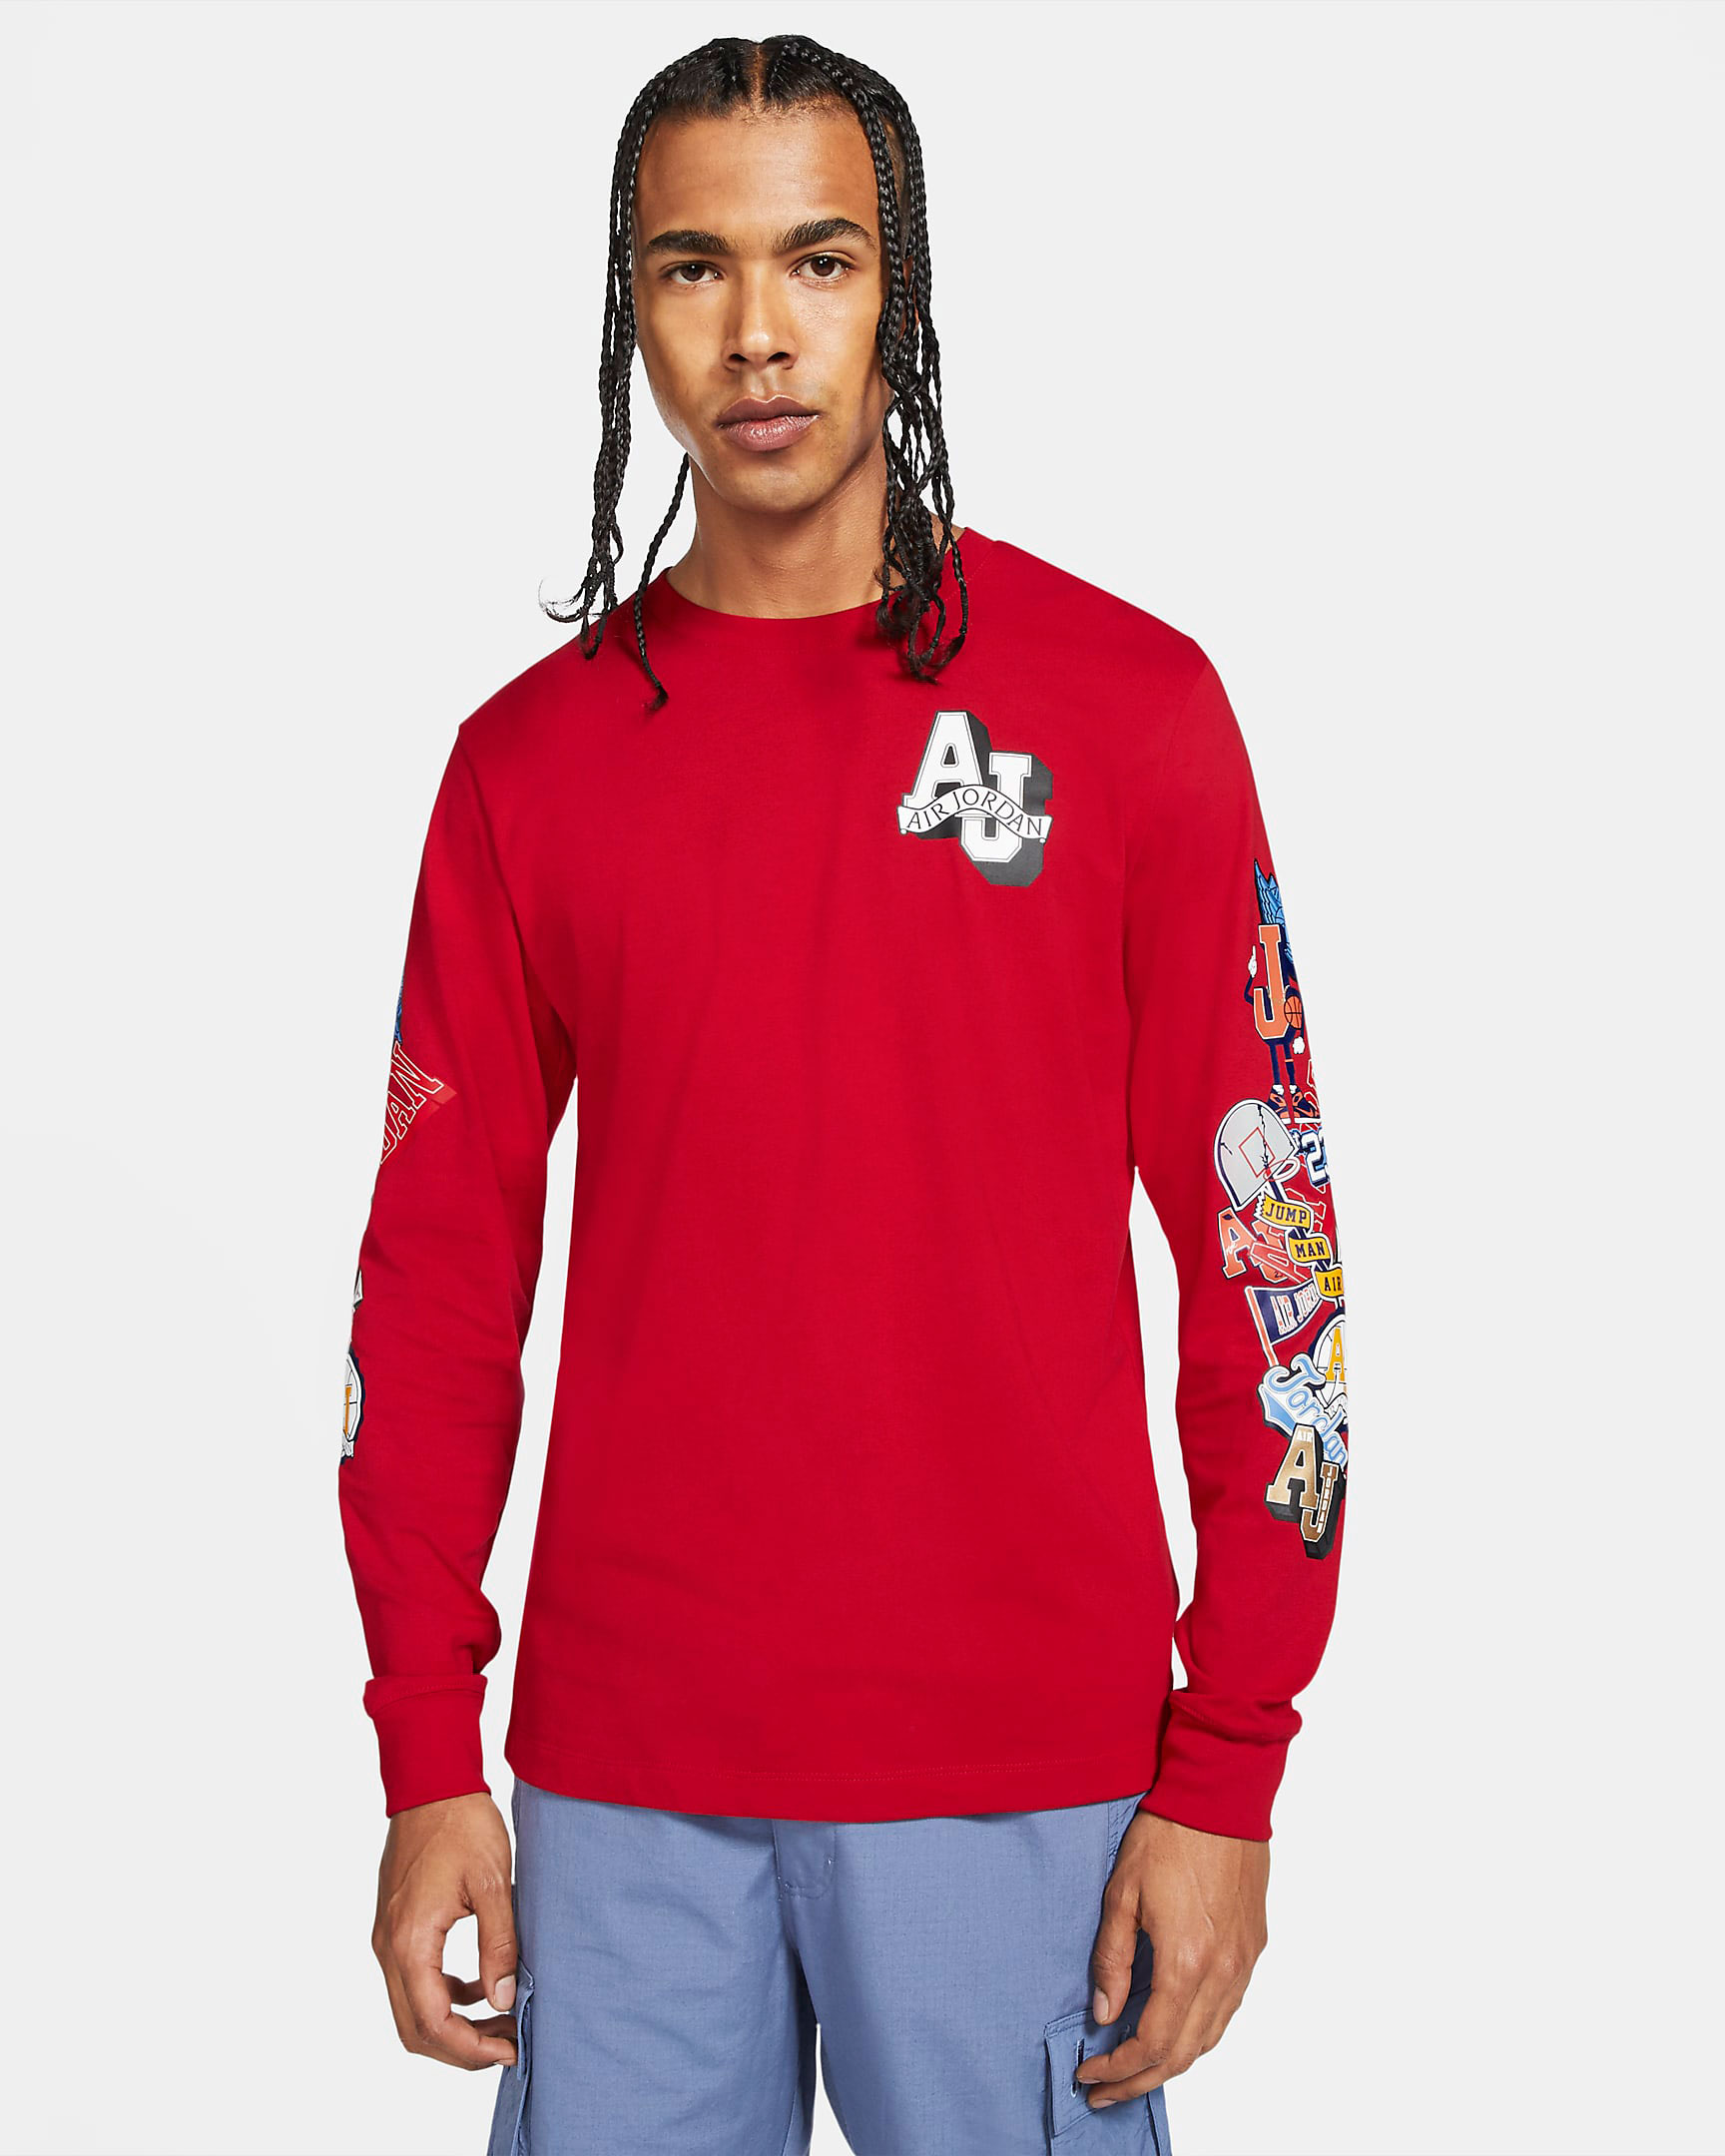 jordan-varsity-long-sleeve-shirt-red-1